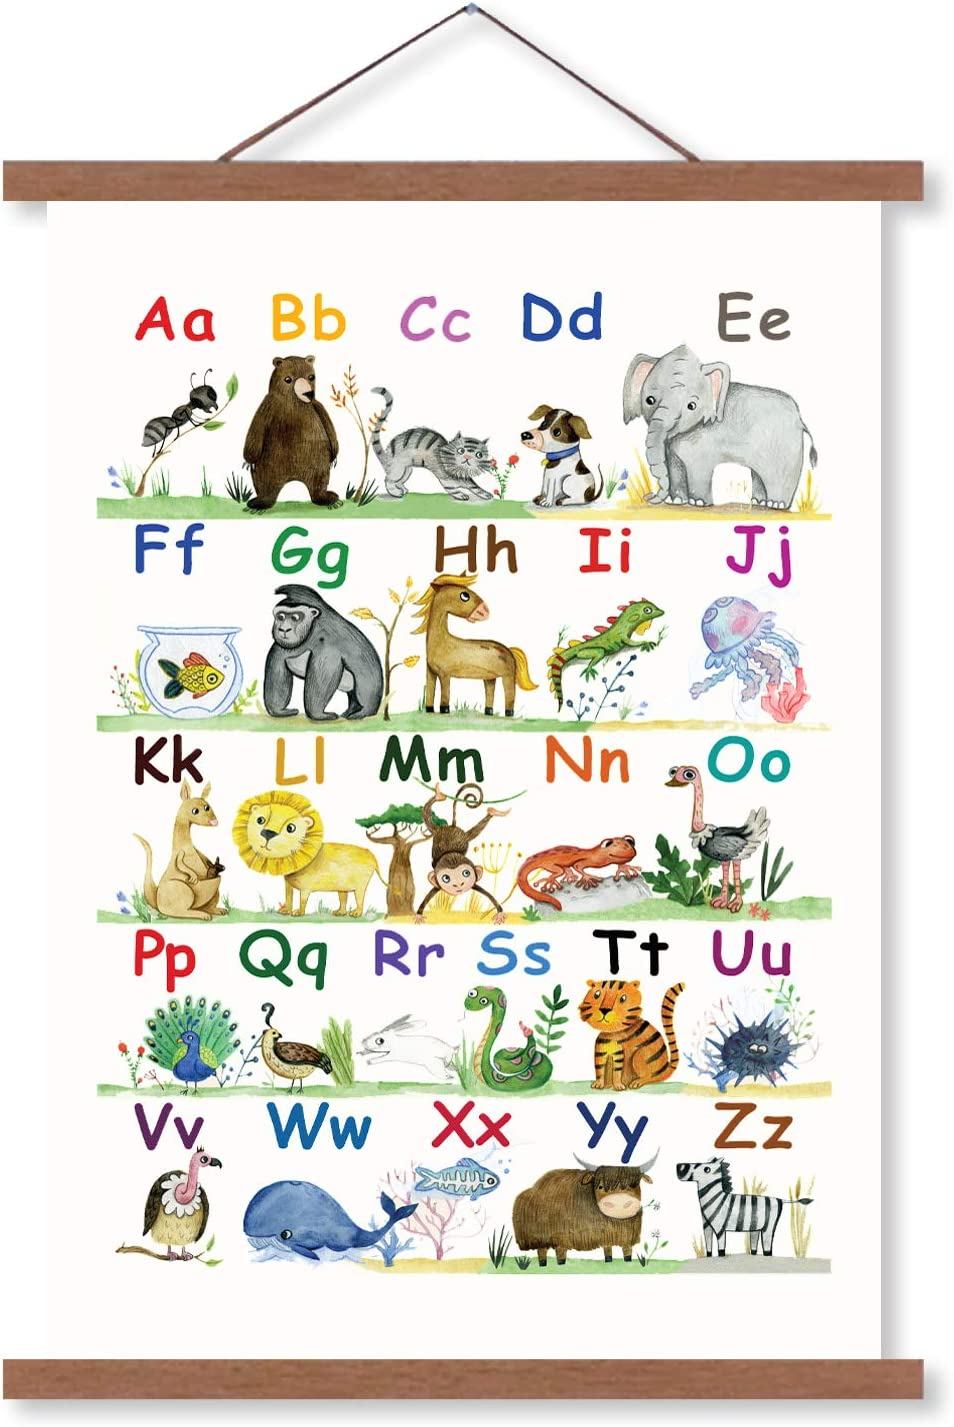 Alphabet Poster for Classroom Decor | ABC Poster for Toddlers Wall Playroom & Nursery Decor | Canvas Wall Art - 15x21 | Kids Alphabet Chart Wall Hanging for Boys & Girls Room Decor